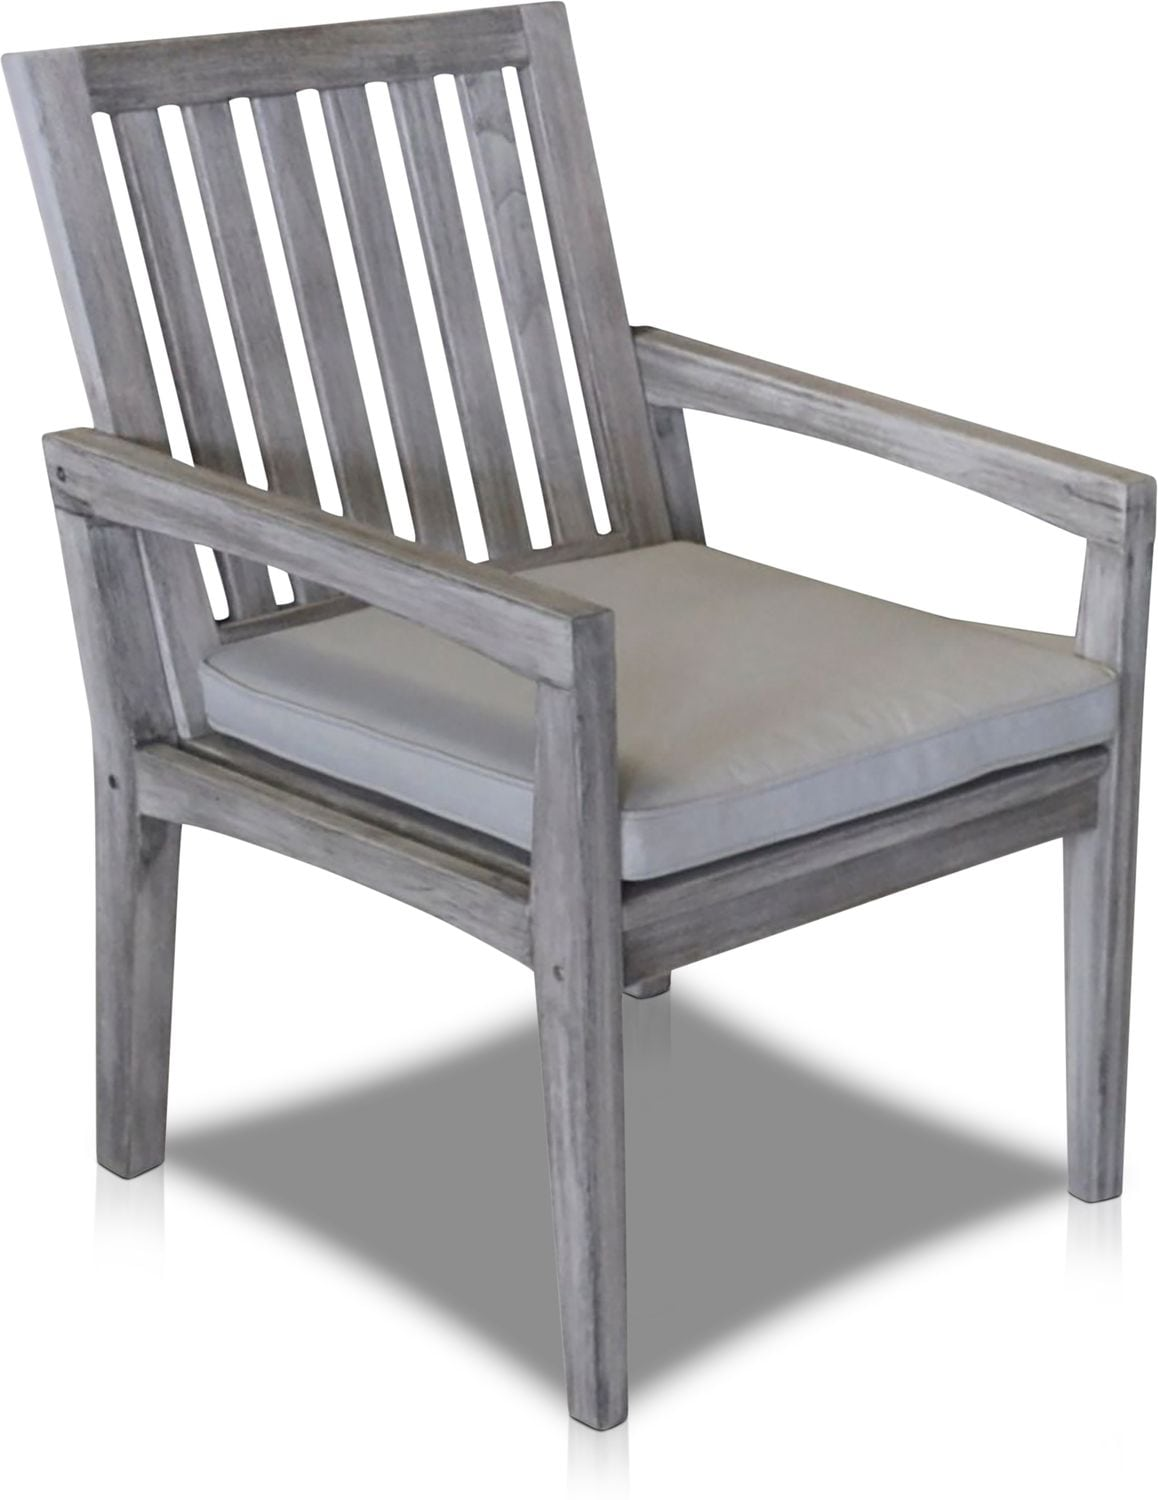 Outdoor Furniture - Marshall Outdoor Dining Chair